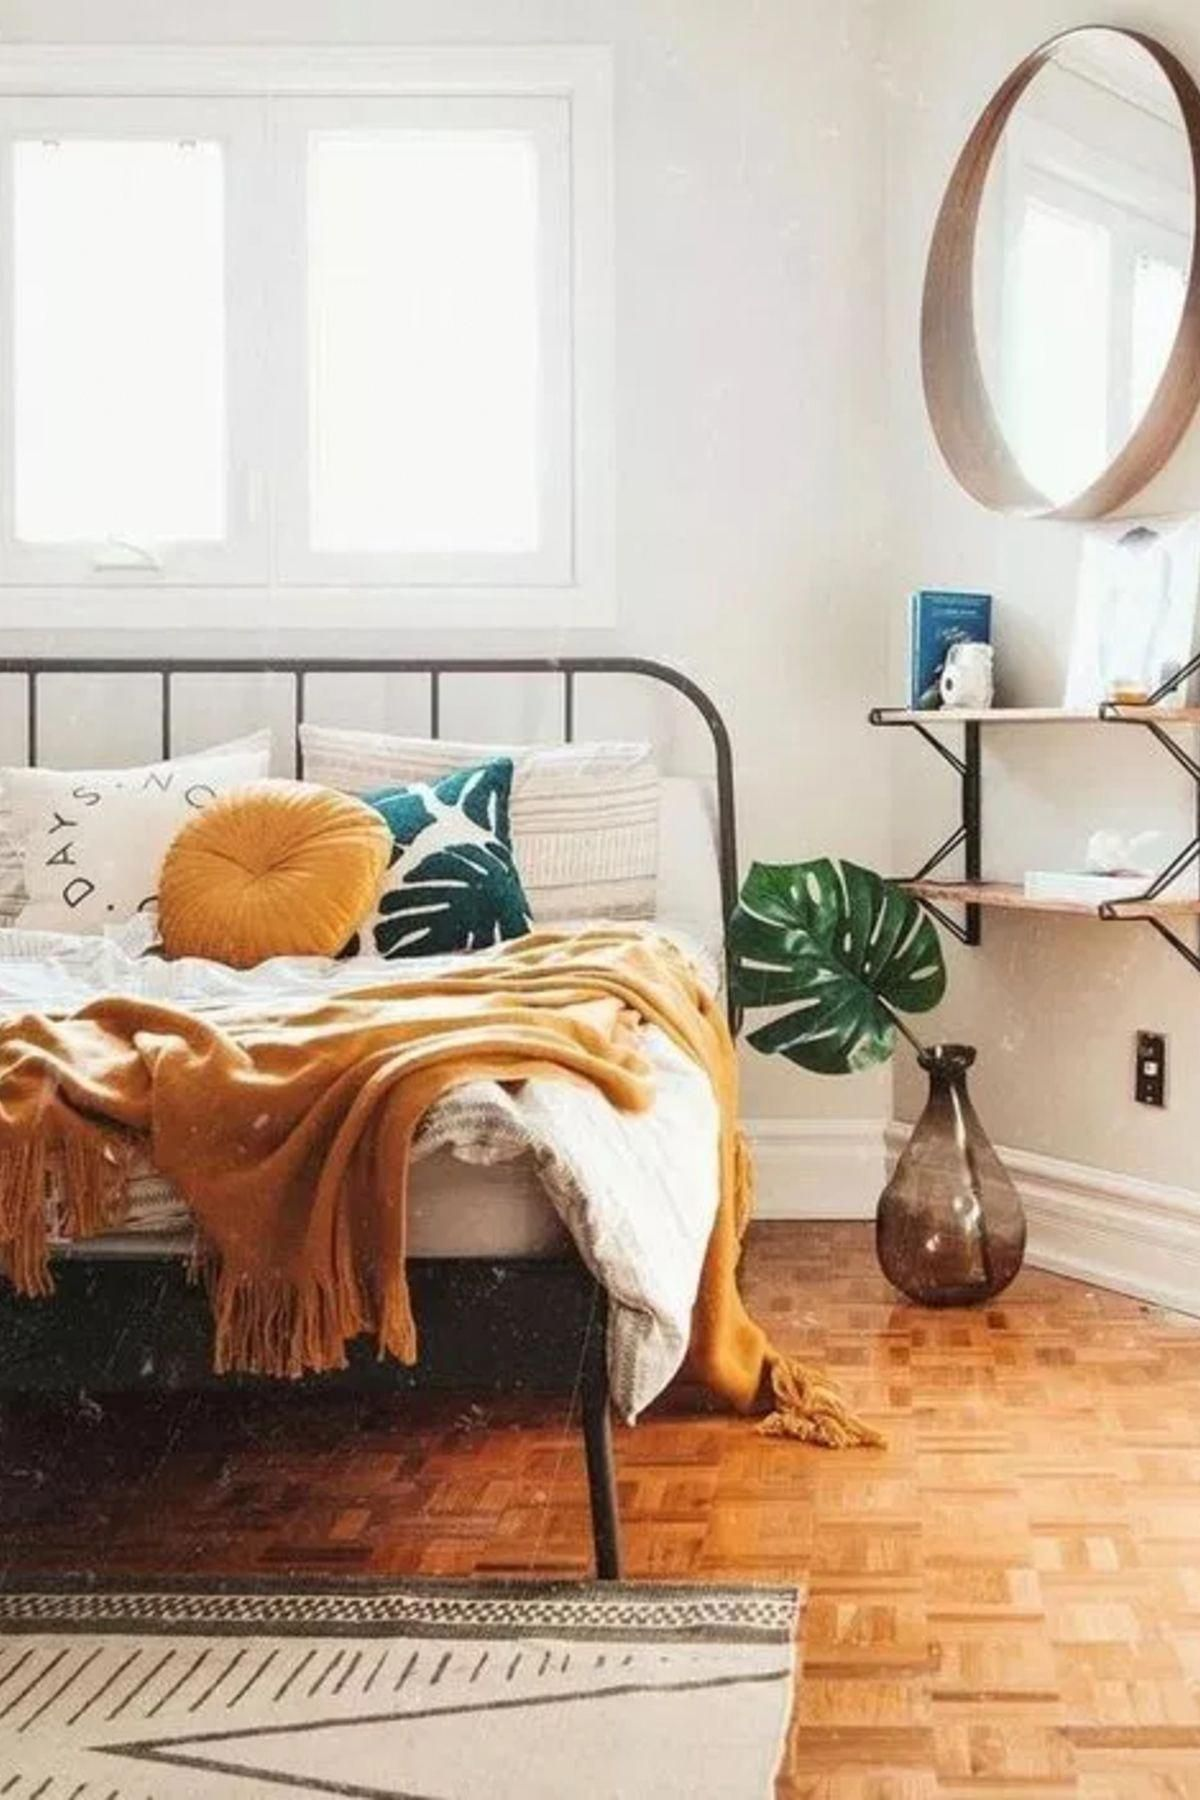 Bohemian Chic Bedroom Decors Will Make You Want Your Teens Back 4 bohemian chic bedroom decors Bohemian Chic Bedroom Decors Will Make You Want Your Teens Back Bohemian Chic Bedroom Decors Will Make You Want Your Teens Back 1